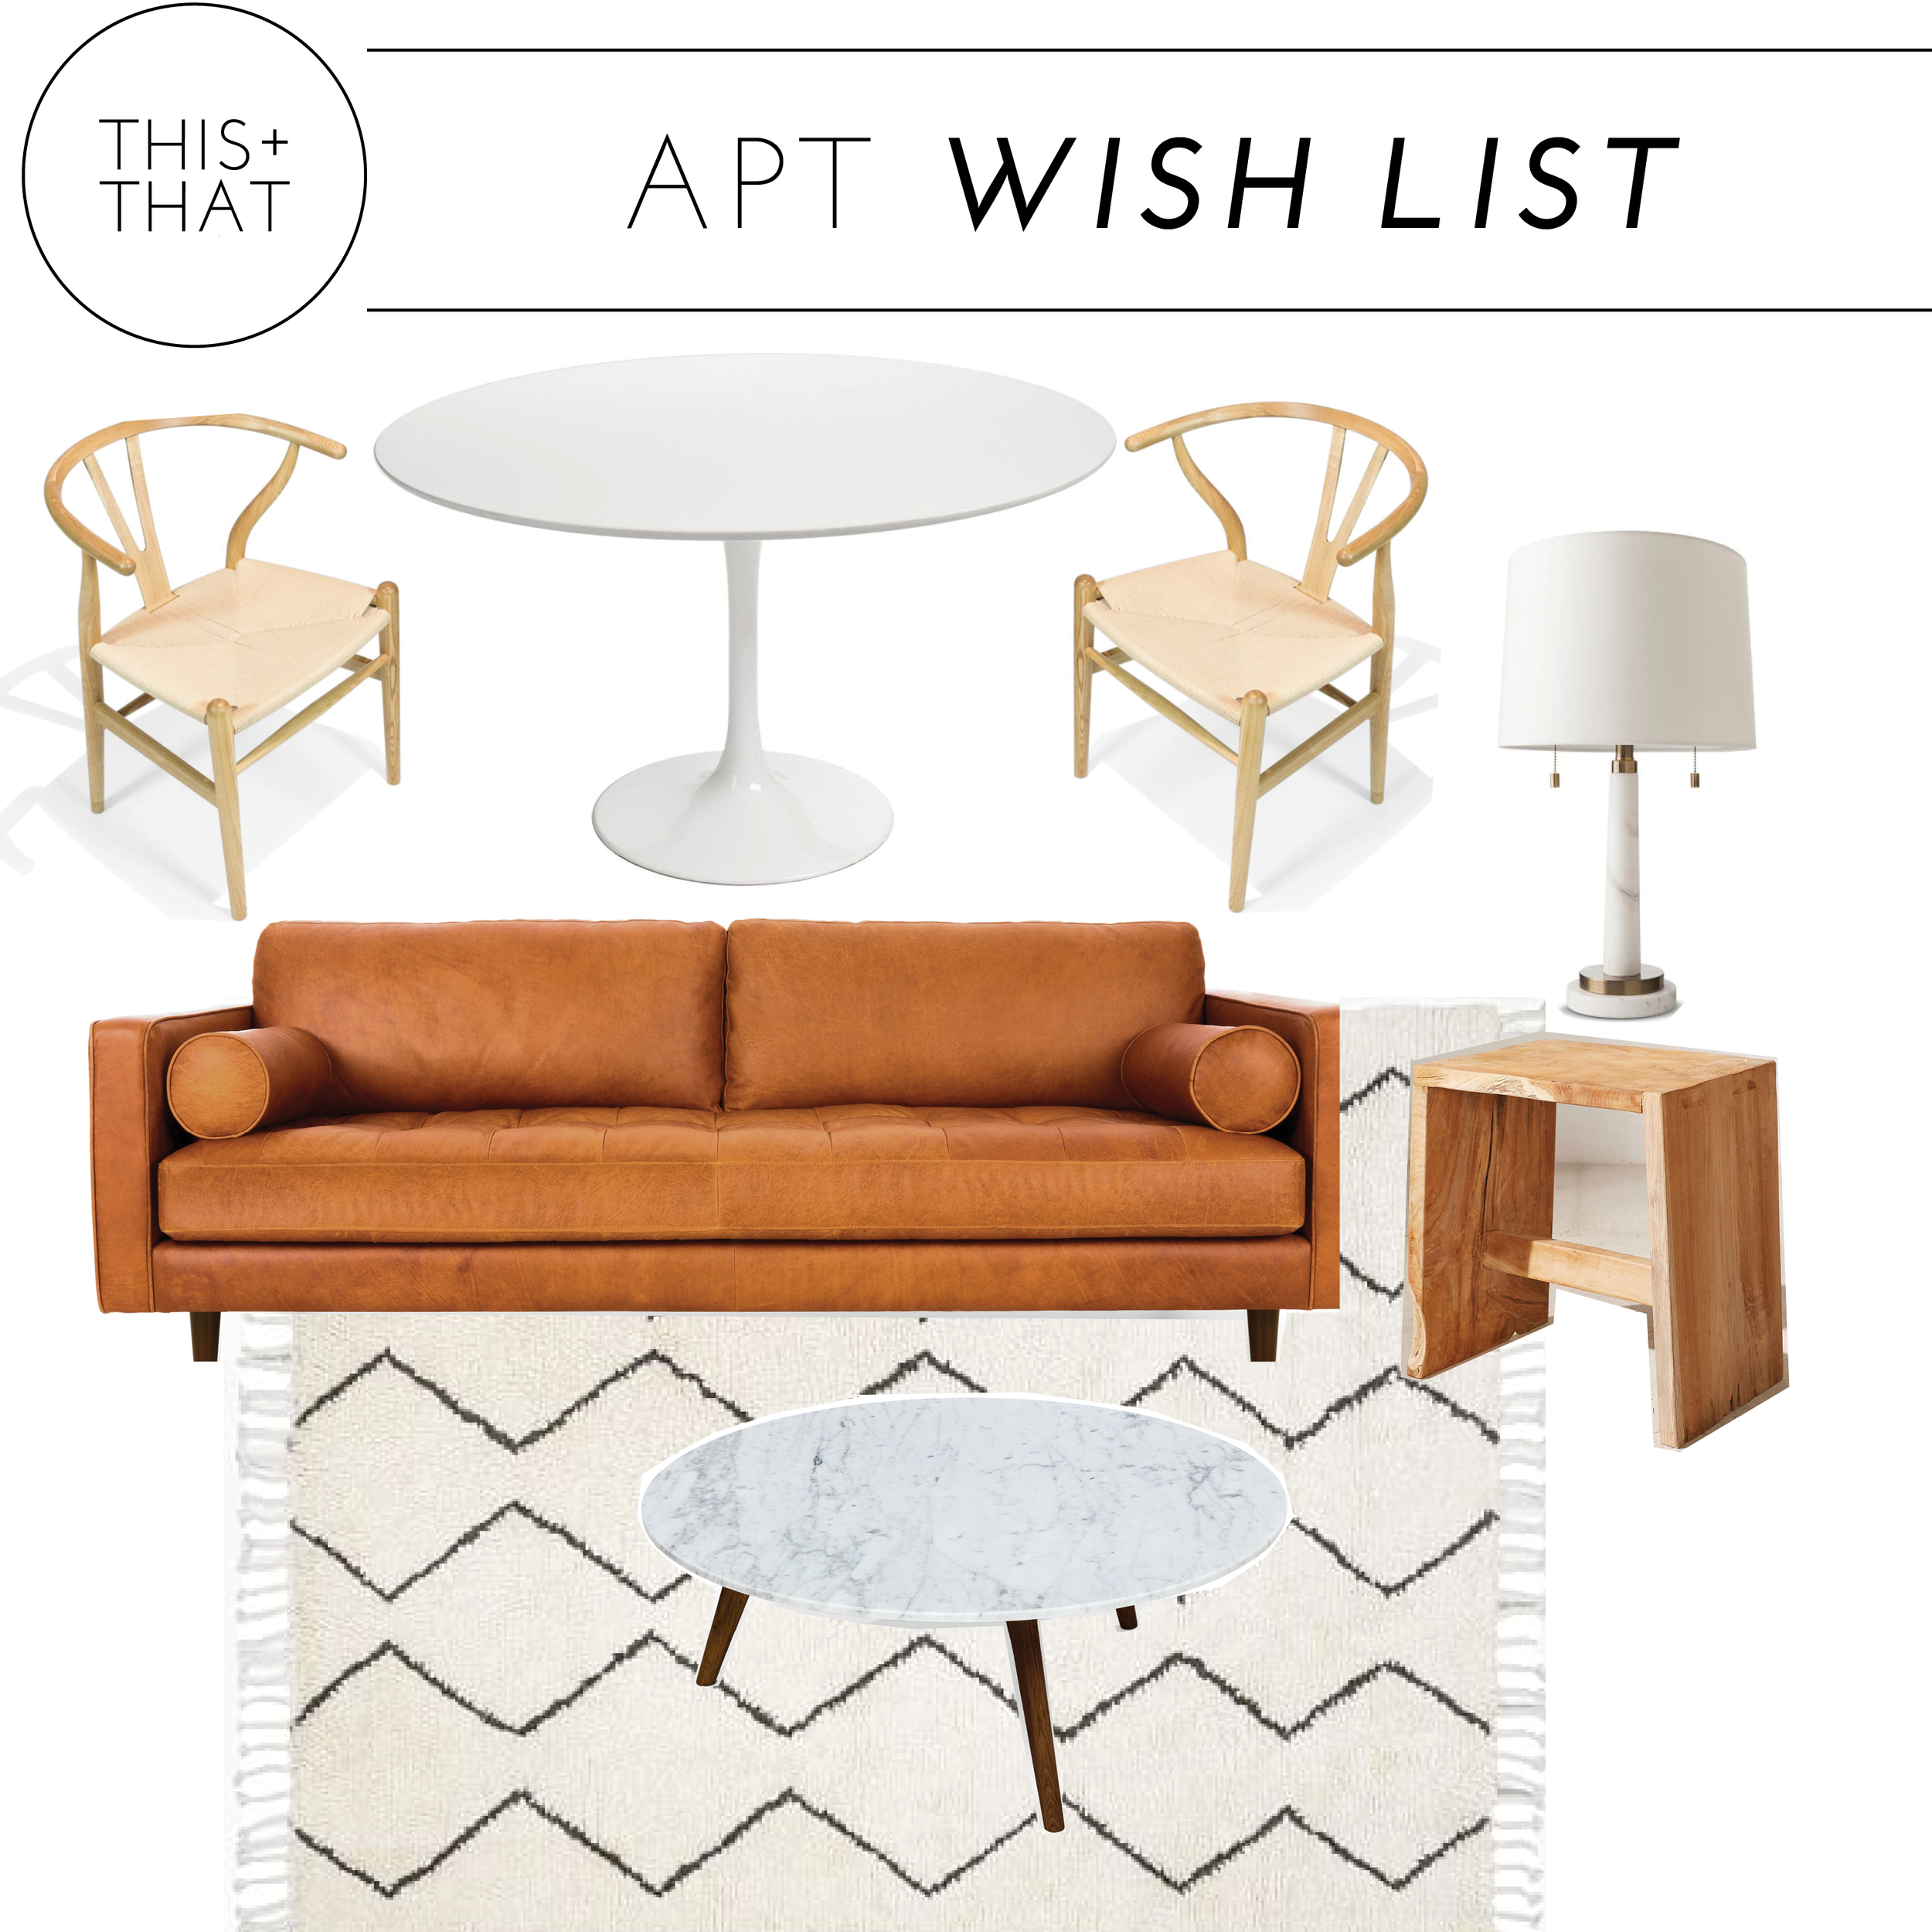 SHOP THE POST:      COFFEE TABLE   |   RUG   |   COUCH   |   END TABLE   |   DINING TABL  E |   DINING CHAIRS   |   LAMP